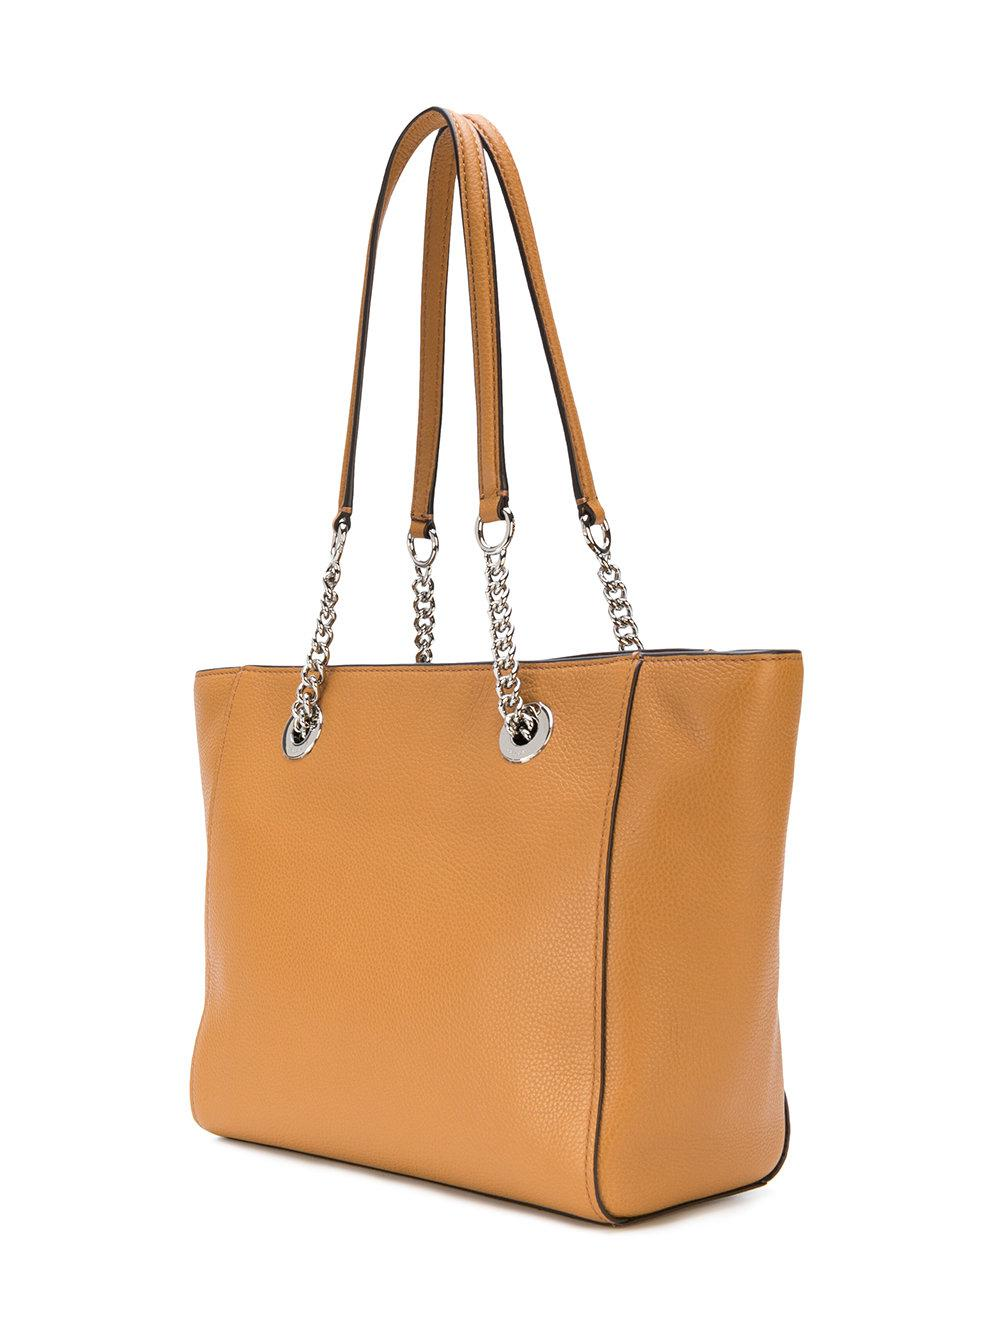 COACH Leather Turnlock Chain Tote in Brown